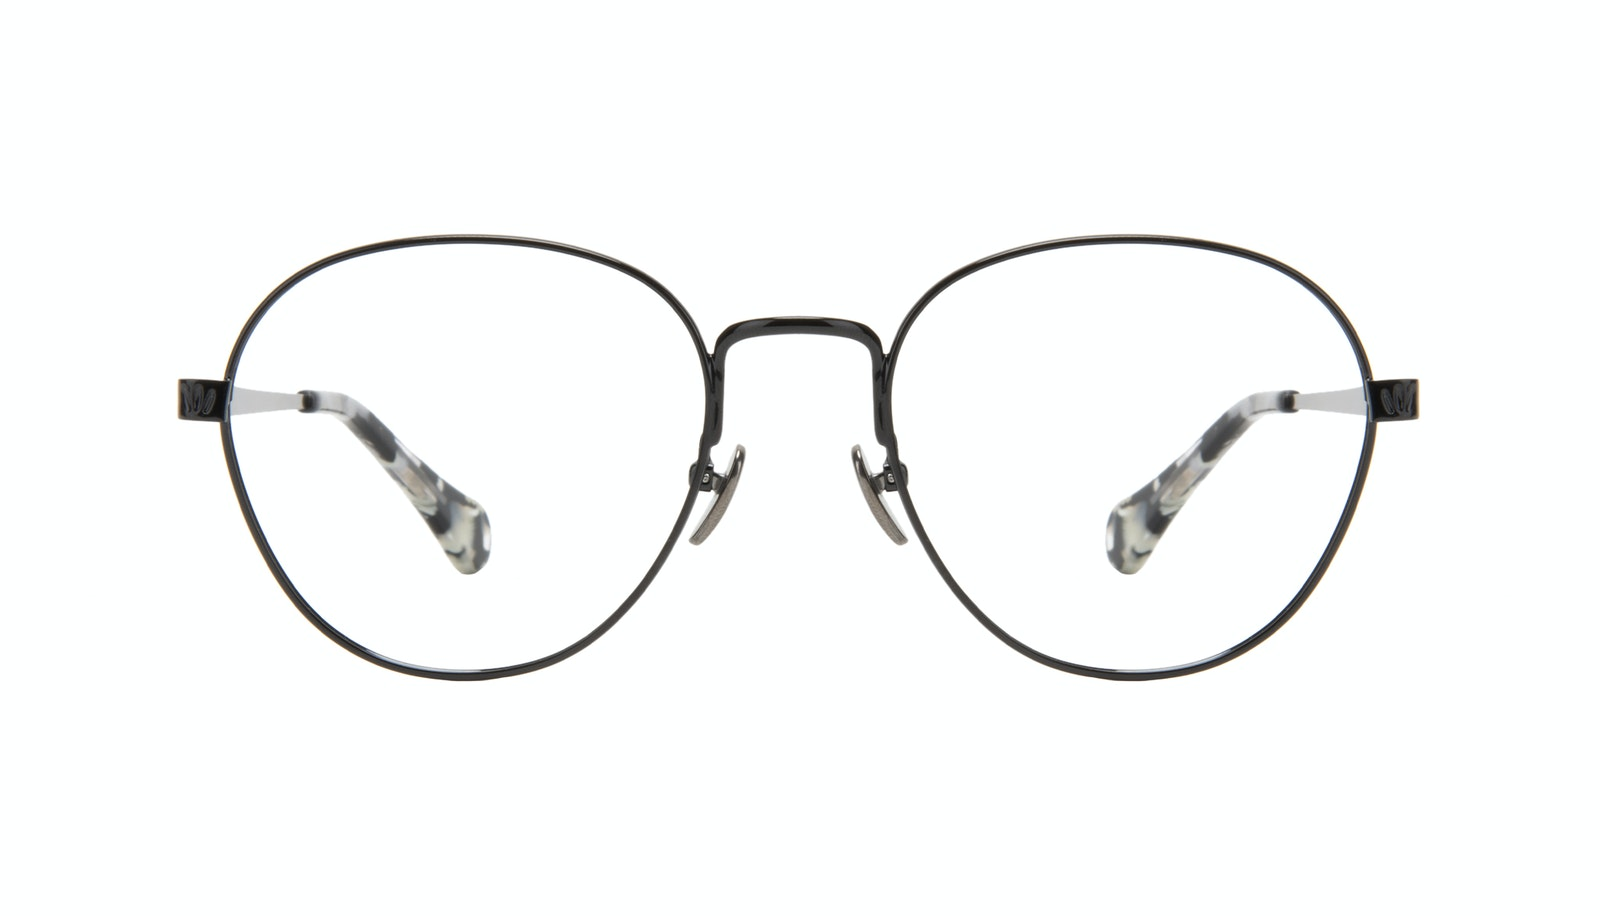 Affordable Fashion Glasses Round Eyeglasses Women Brace Onyx Marble